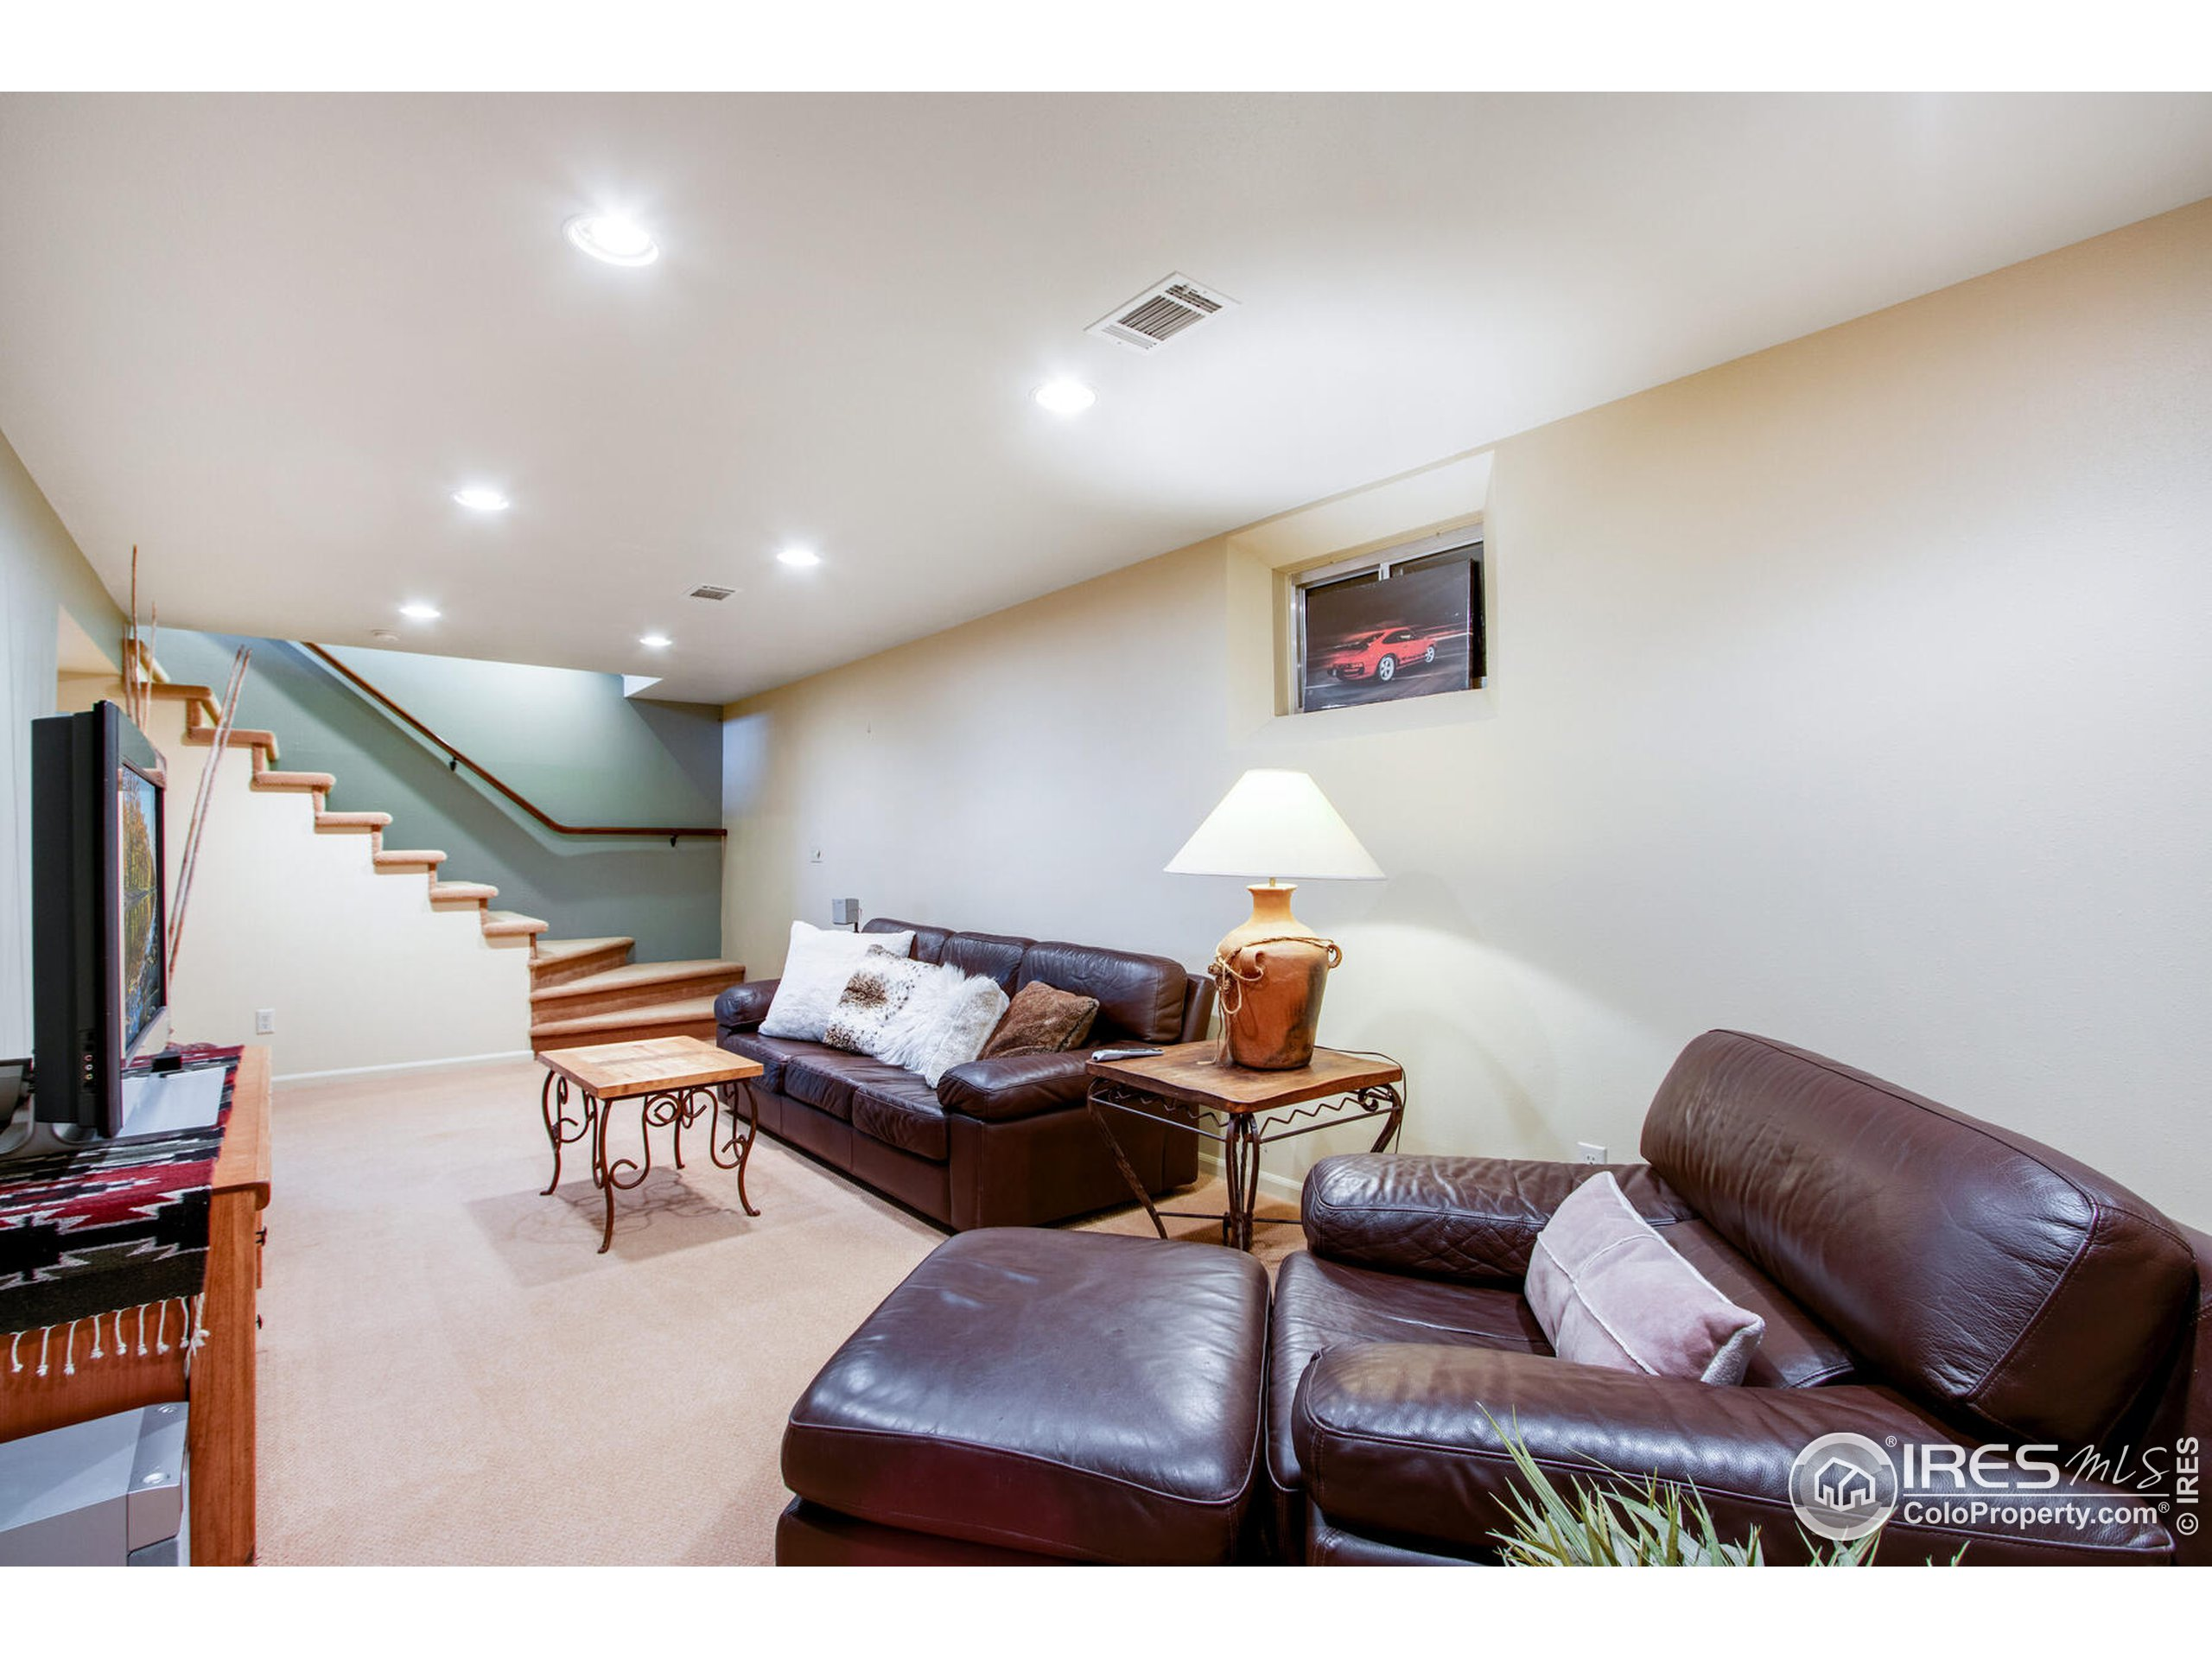 Finished walk-out lower level - endless options*